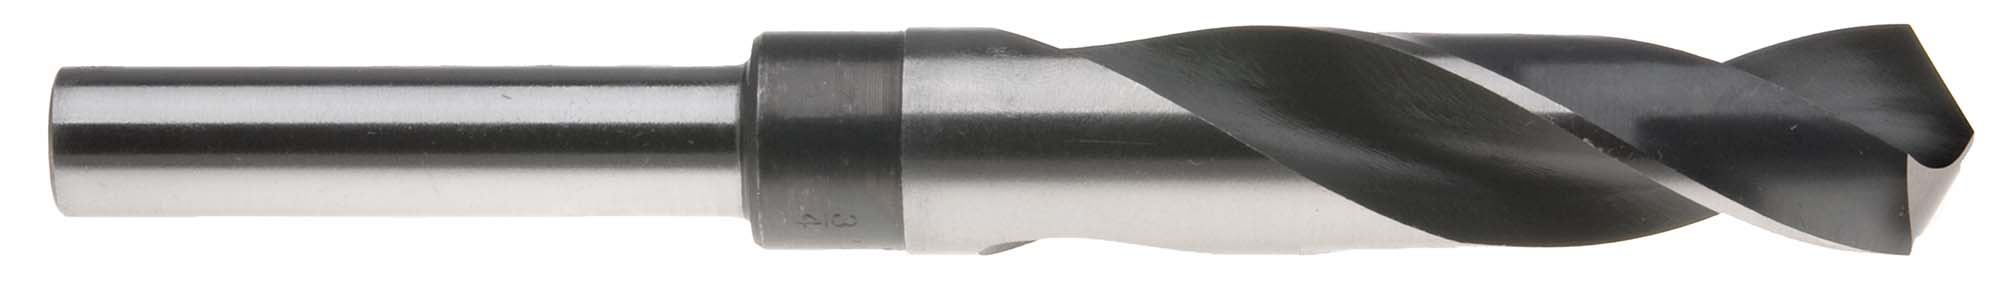 "49/64"" USA Drill Bit with 1/2"" Shank (S+D Type) High Speed Steel"